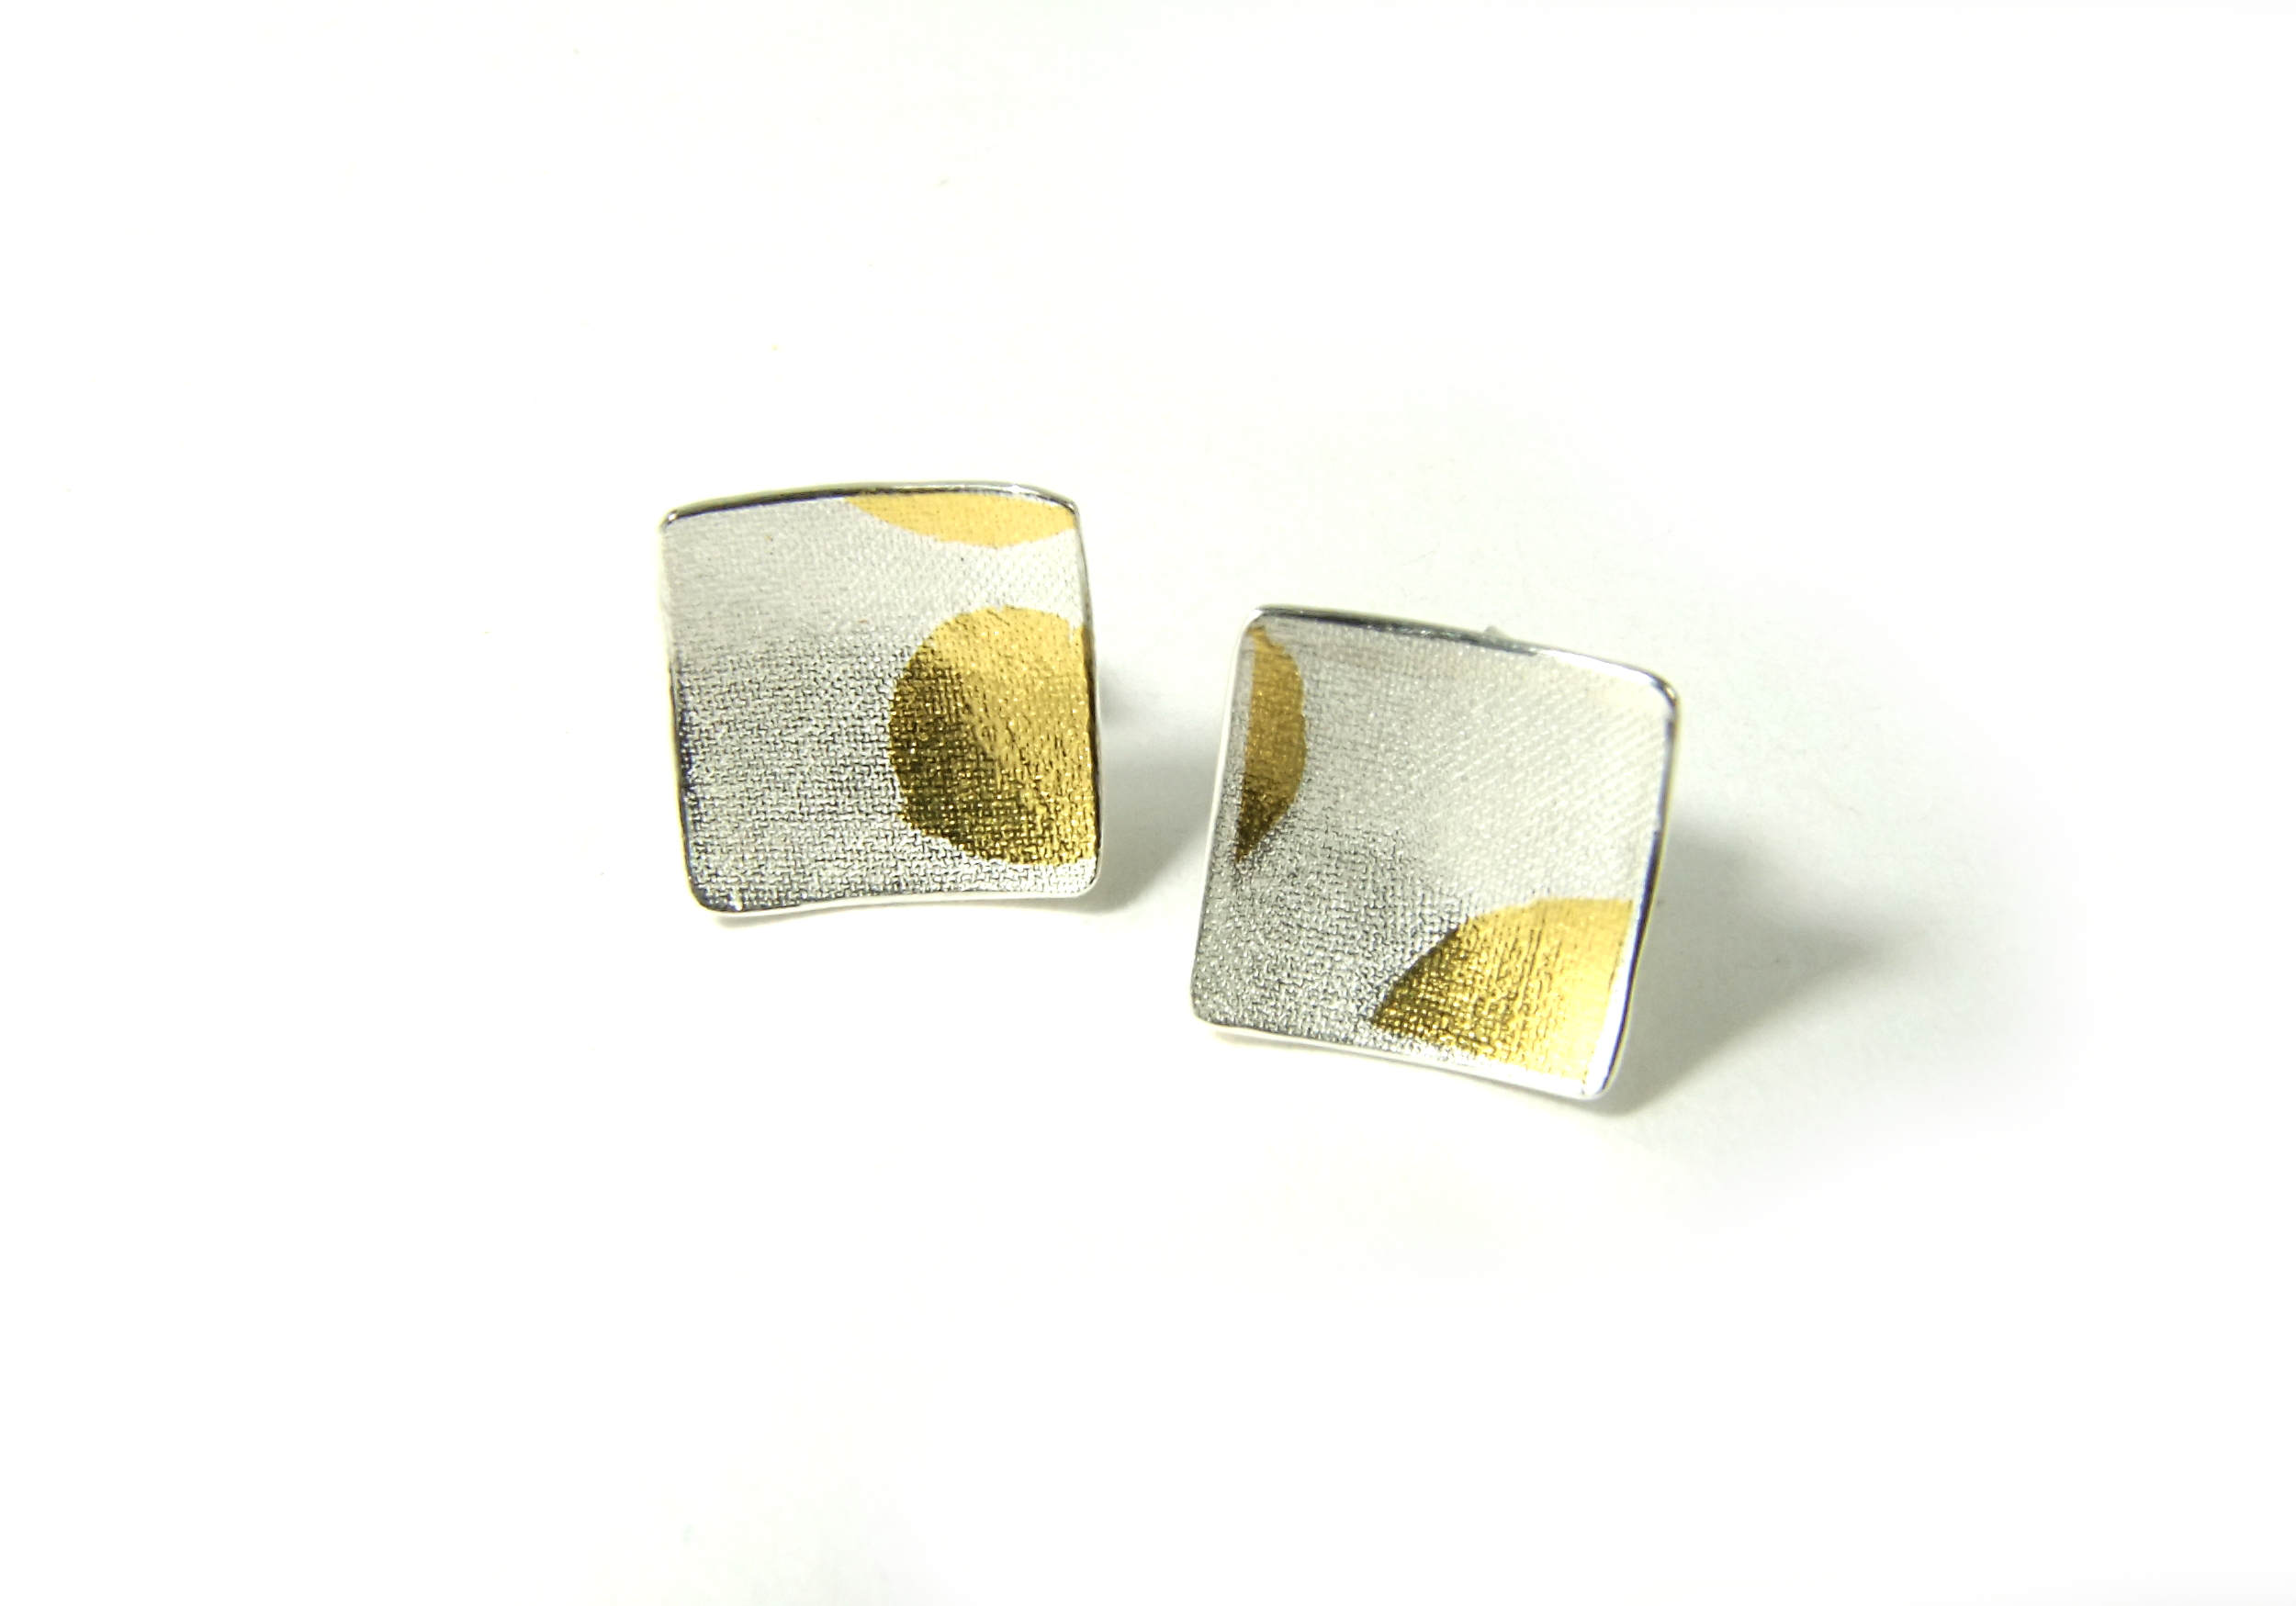 Front view of square, domed and textured Argentium silver ear studs with round Keum-Boo patterns in 22K yellow gold. Size: 10x10 mm (HBM085D)